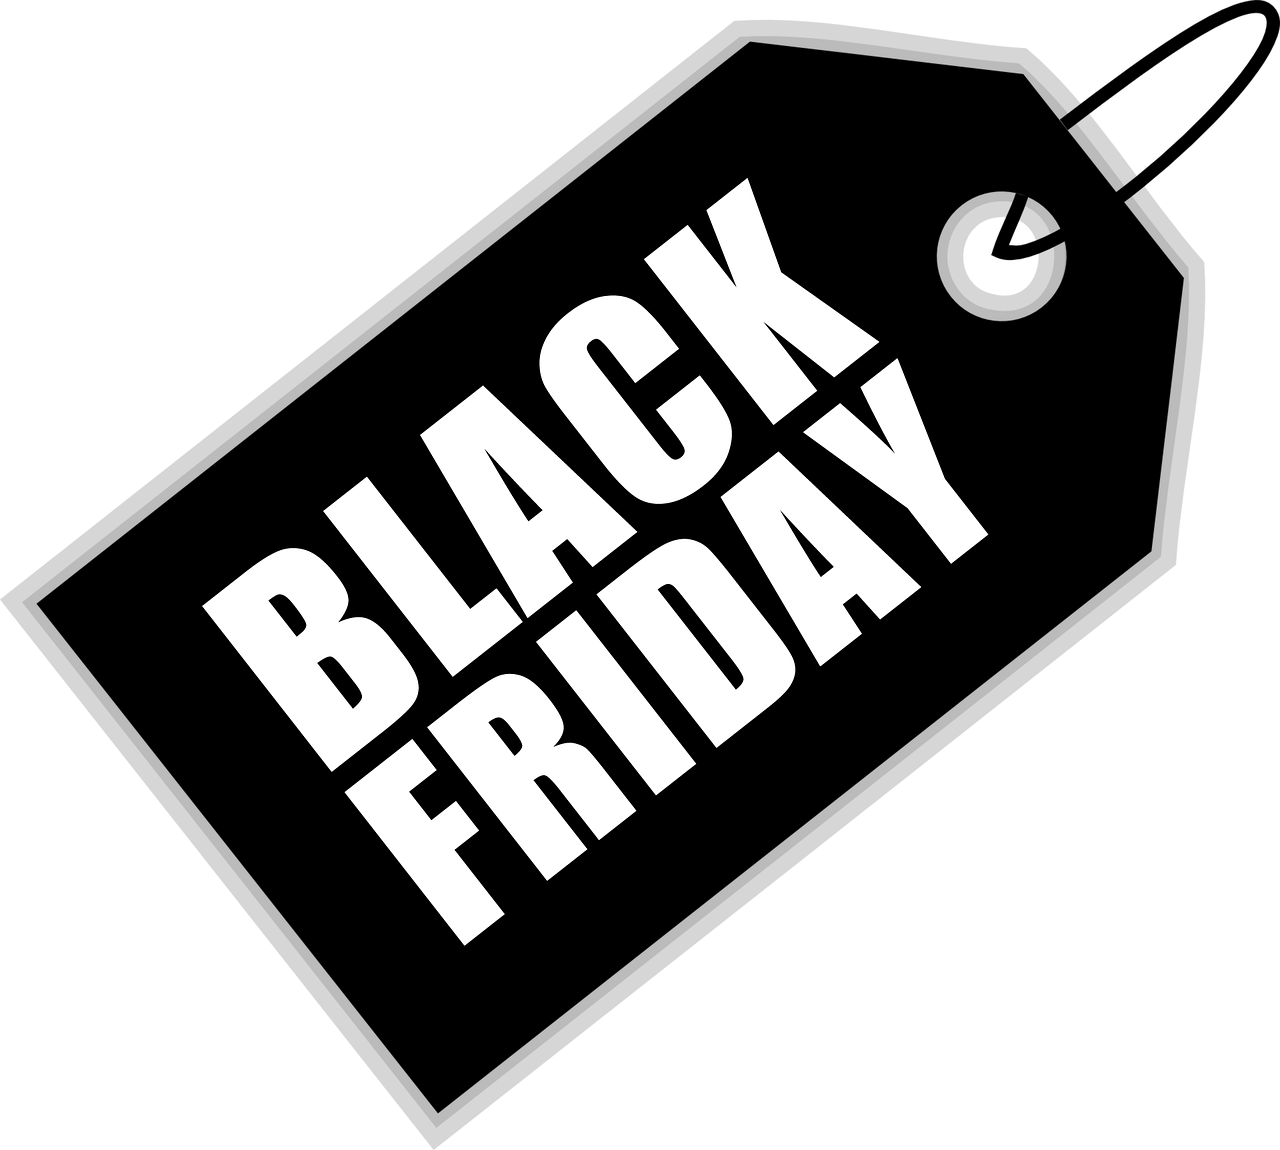 Difference between Boxing Day and Black Friday